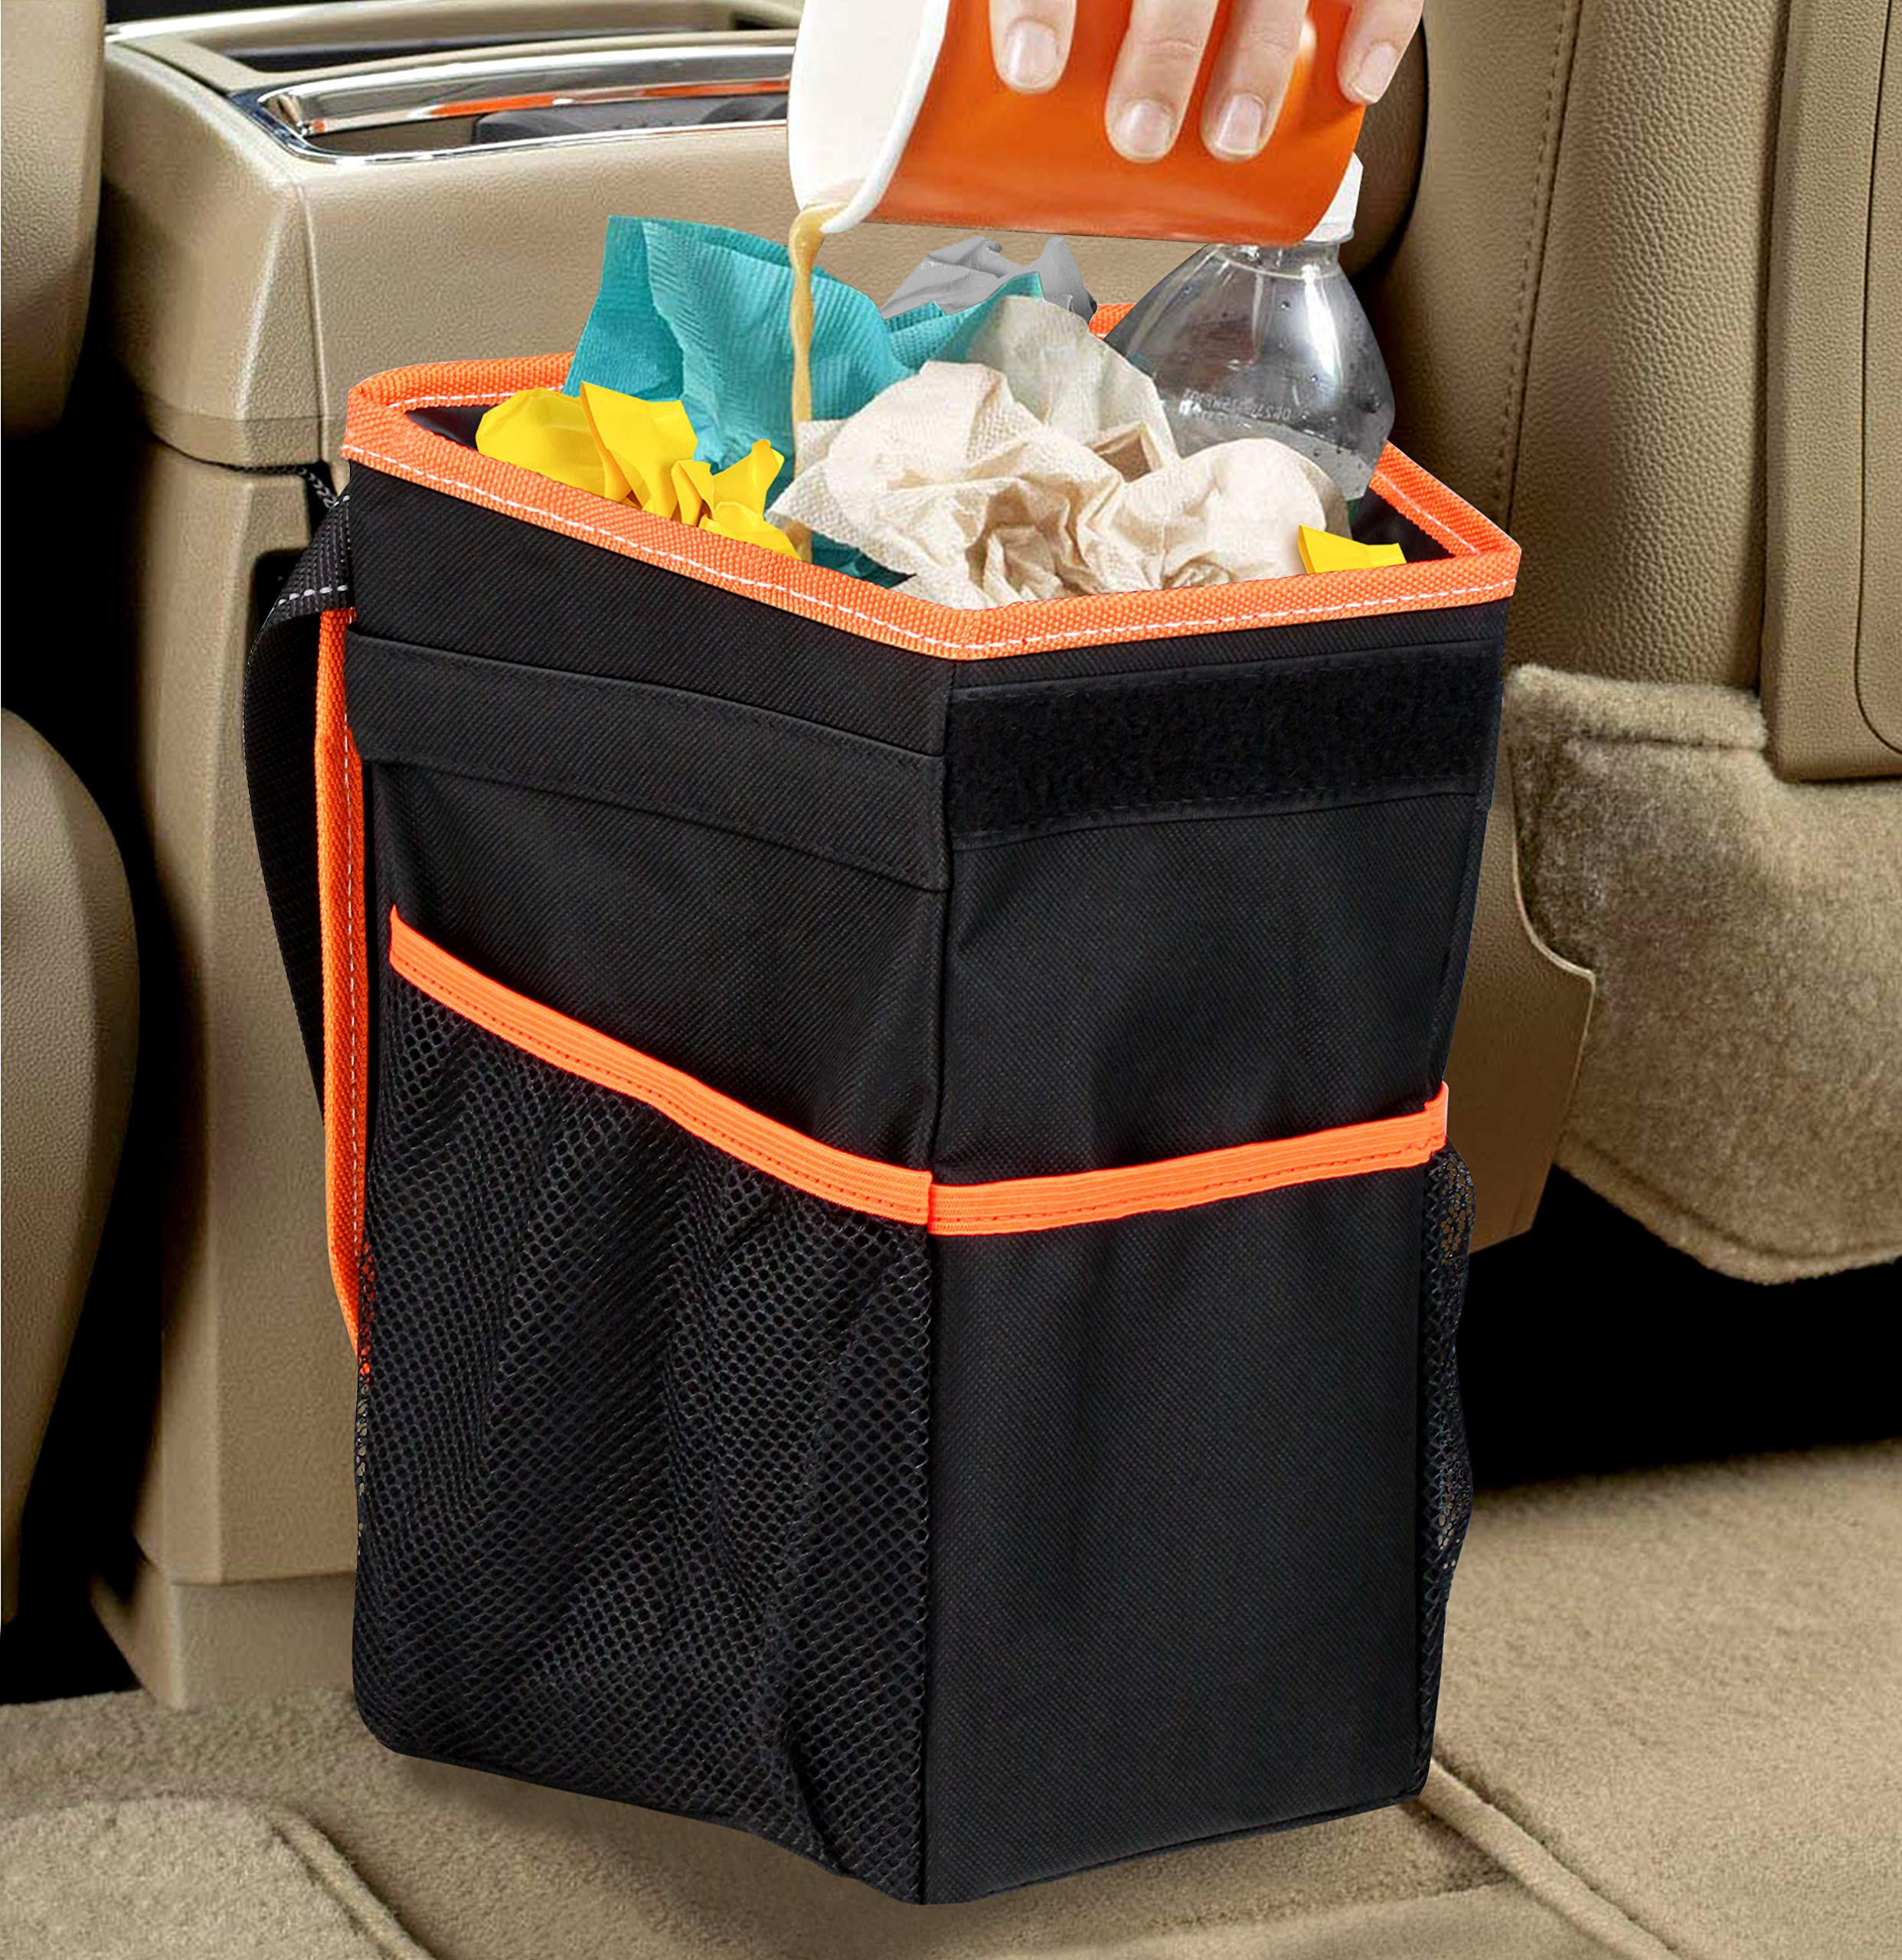 APPUCOCO Car and Motorbike Trash Bin Organizer with Lid and Storage Pockets - Black product image